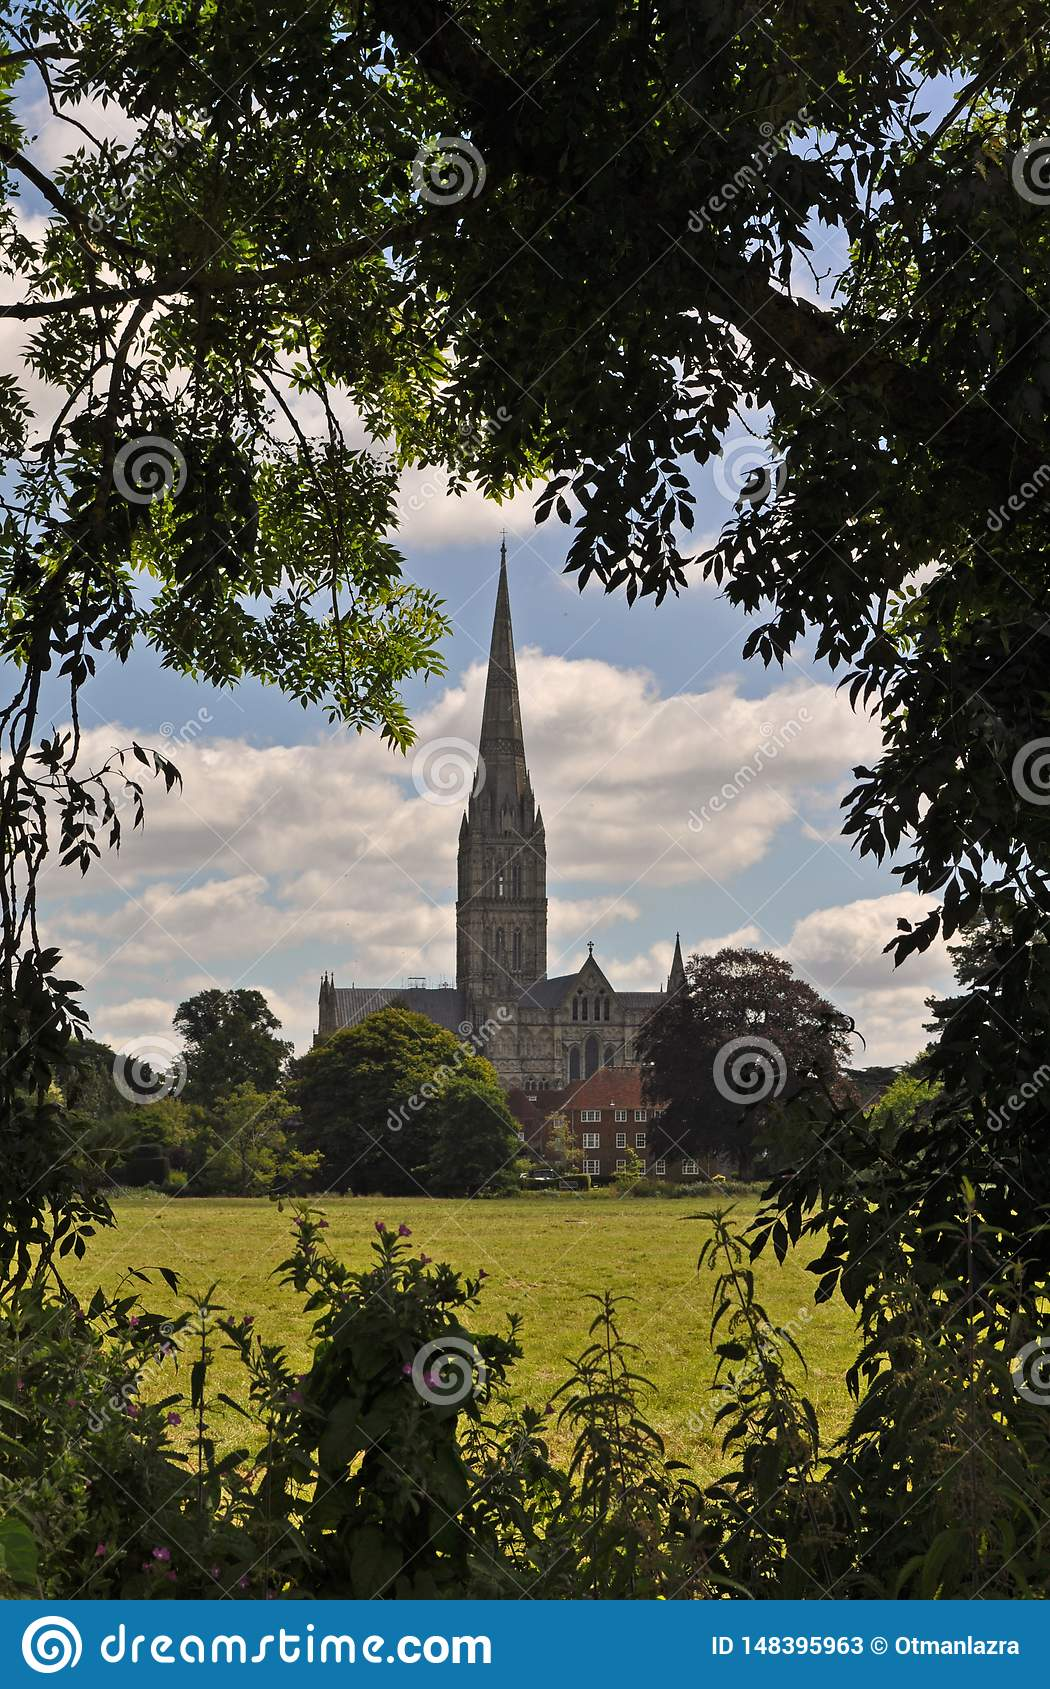 Salisbury cathedral church of the Blessed Virgin Mary